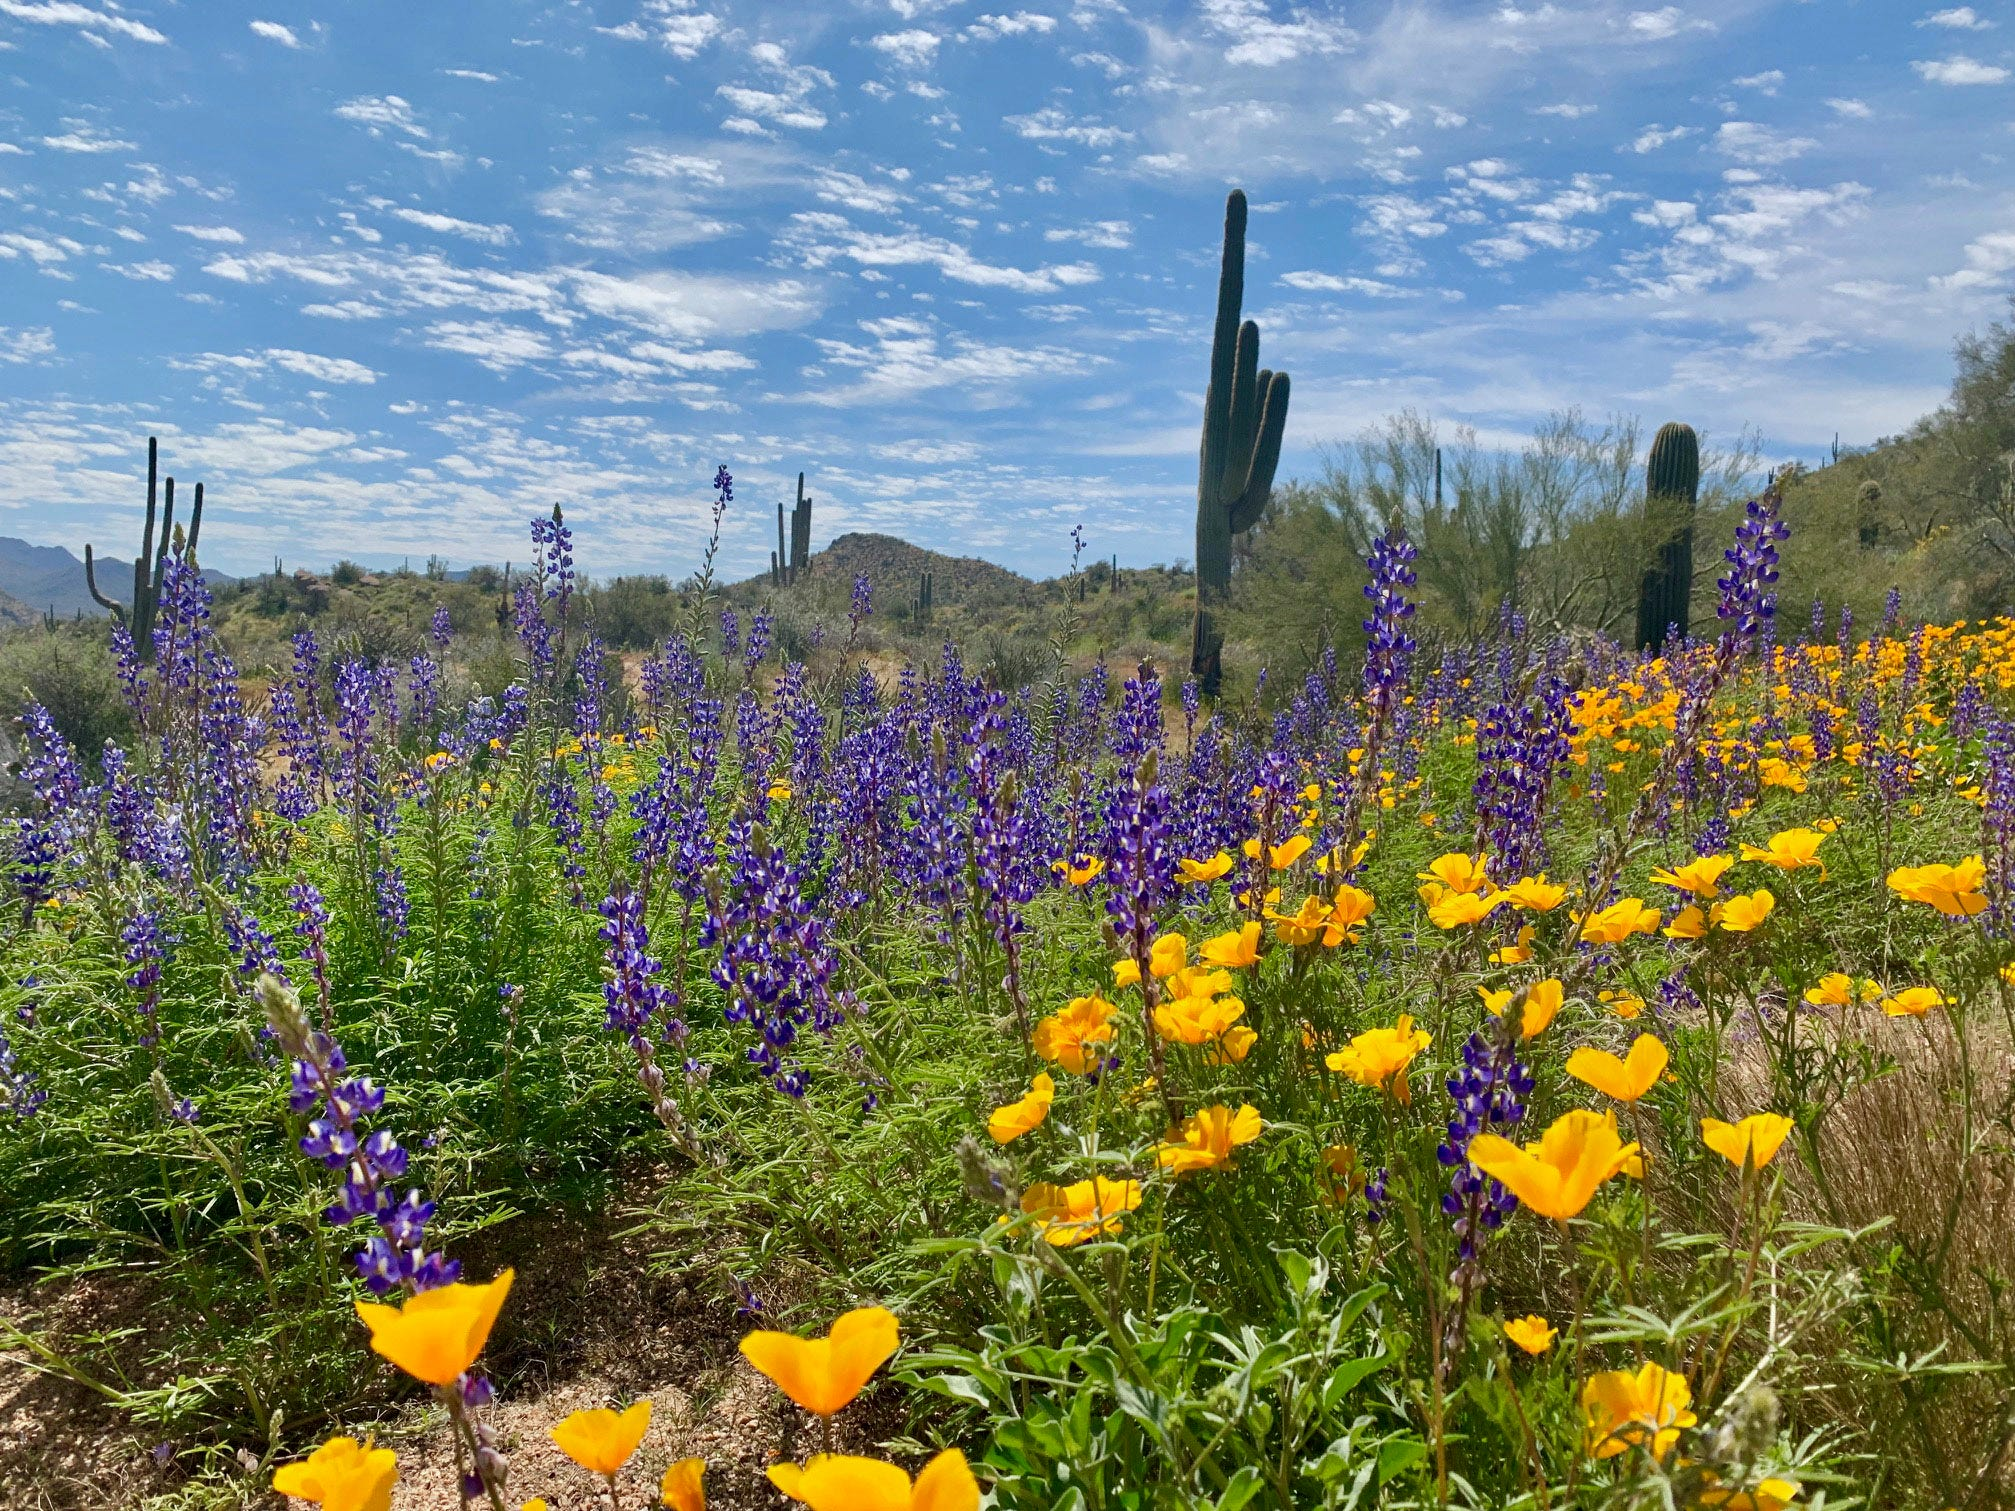 Brace yourself: After a cool spring, 90-degree weather is possible in Phoenix area